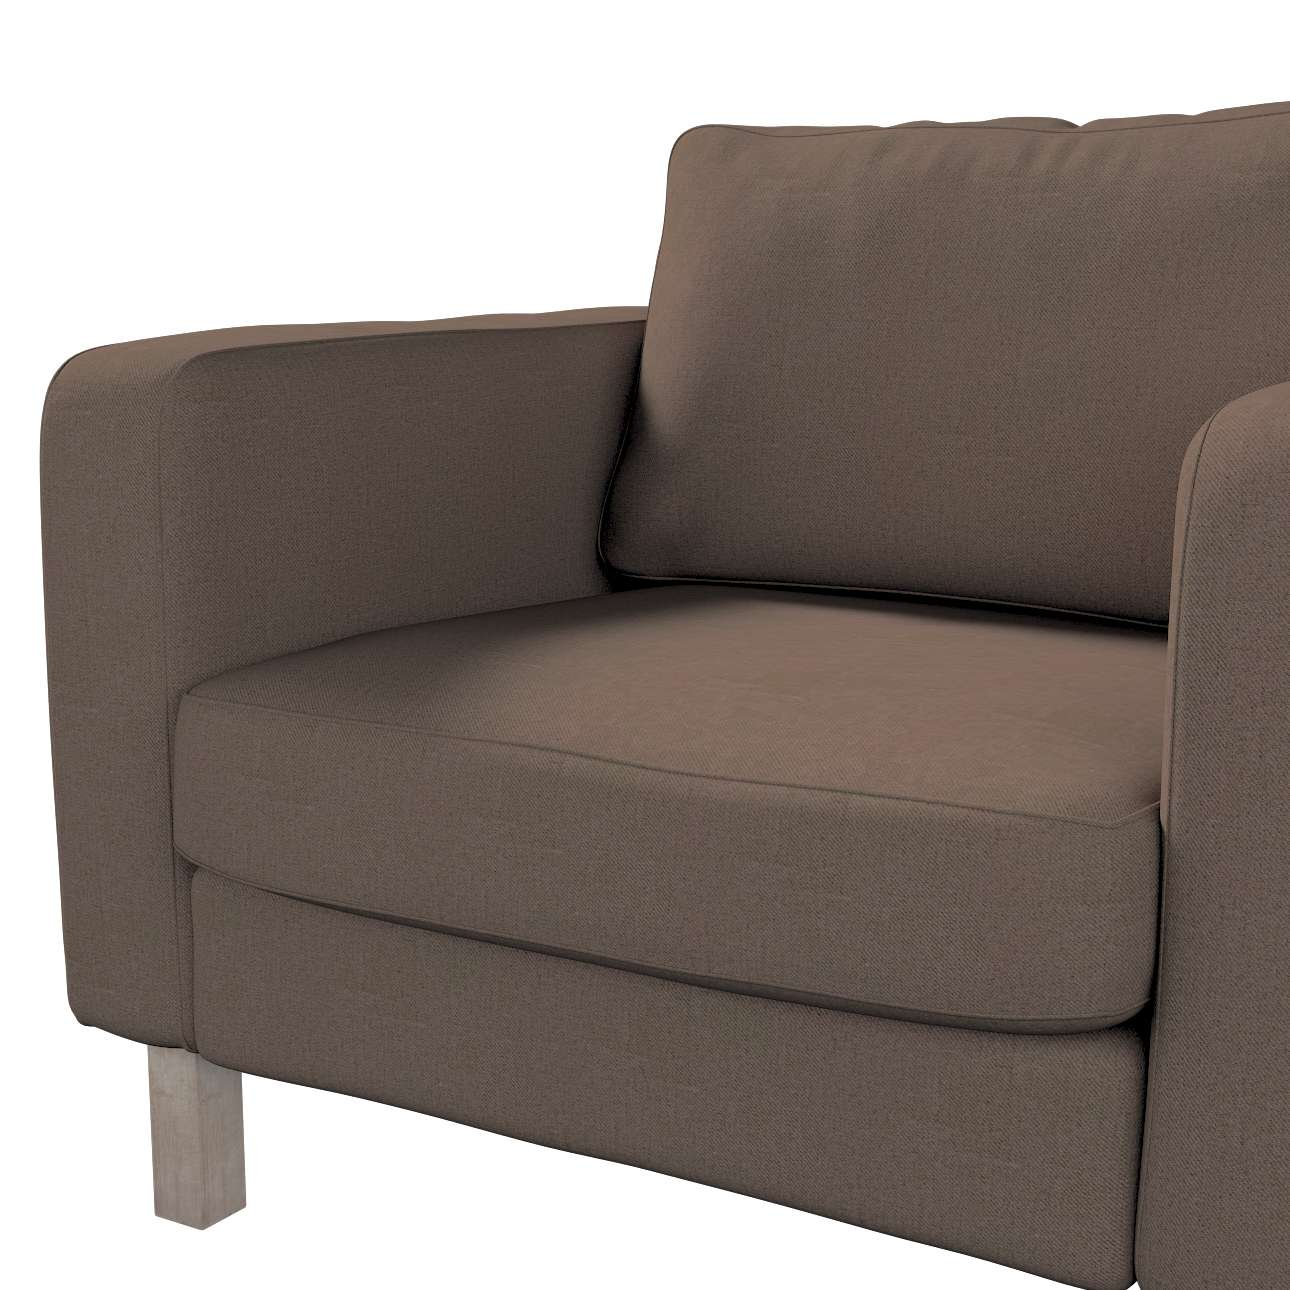 Karlstad armchair cover in collection Edinburgh, fabric: 115-85